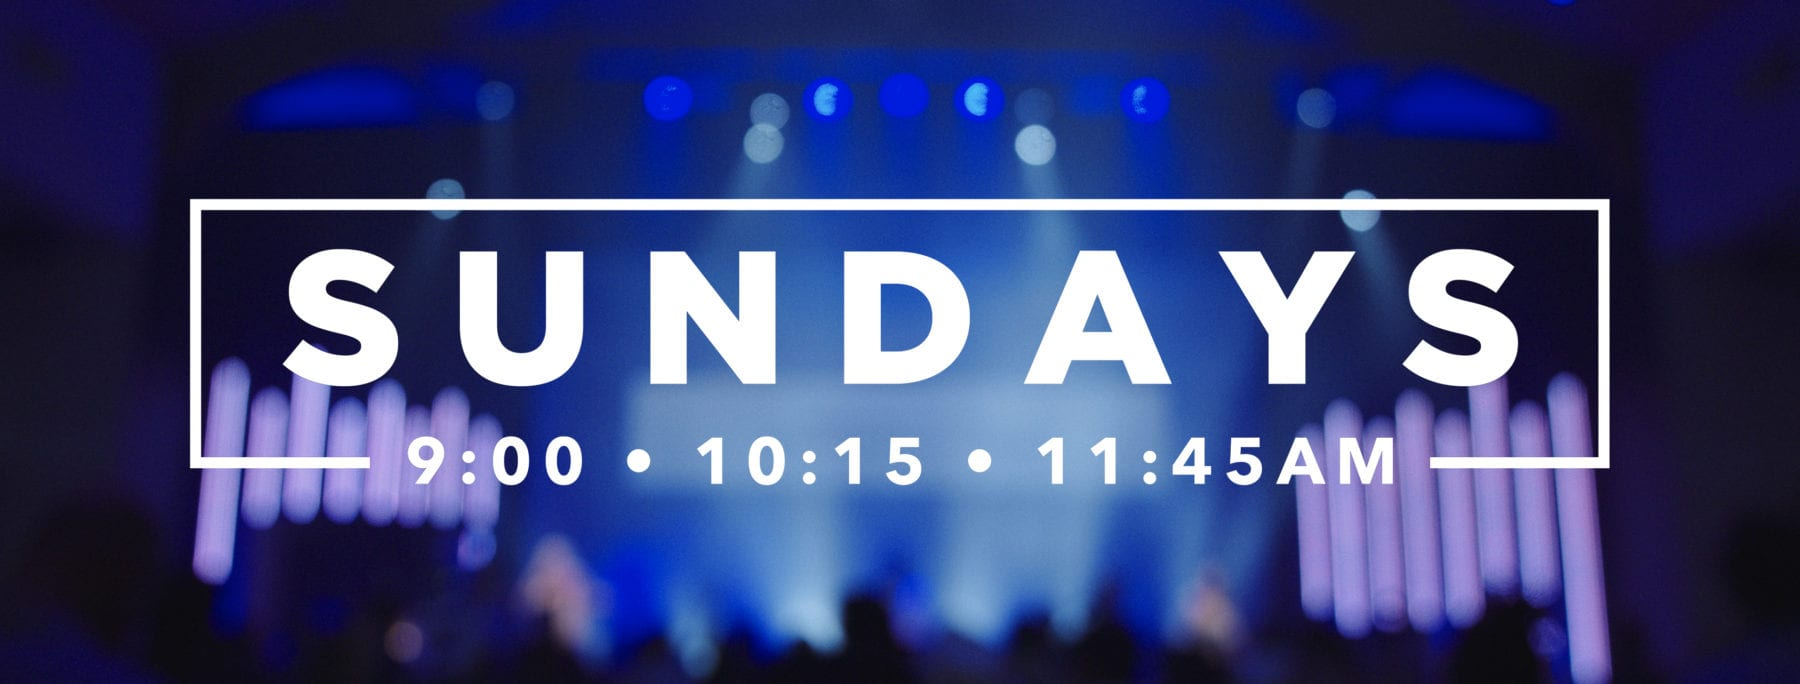 Sundays 9:00 = 10:15 - 11:45AM